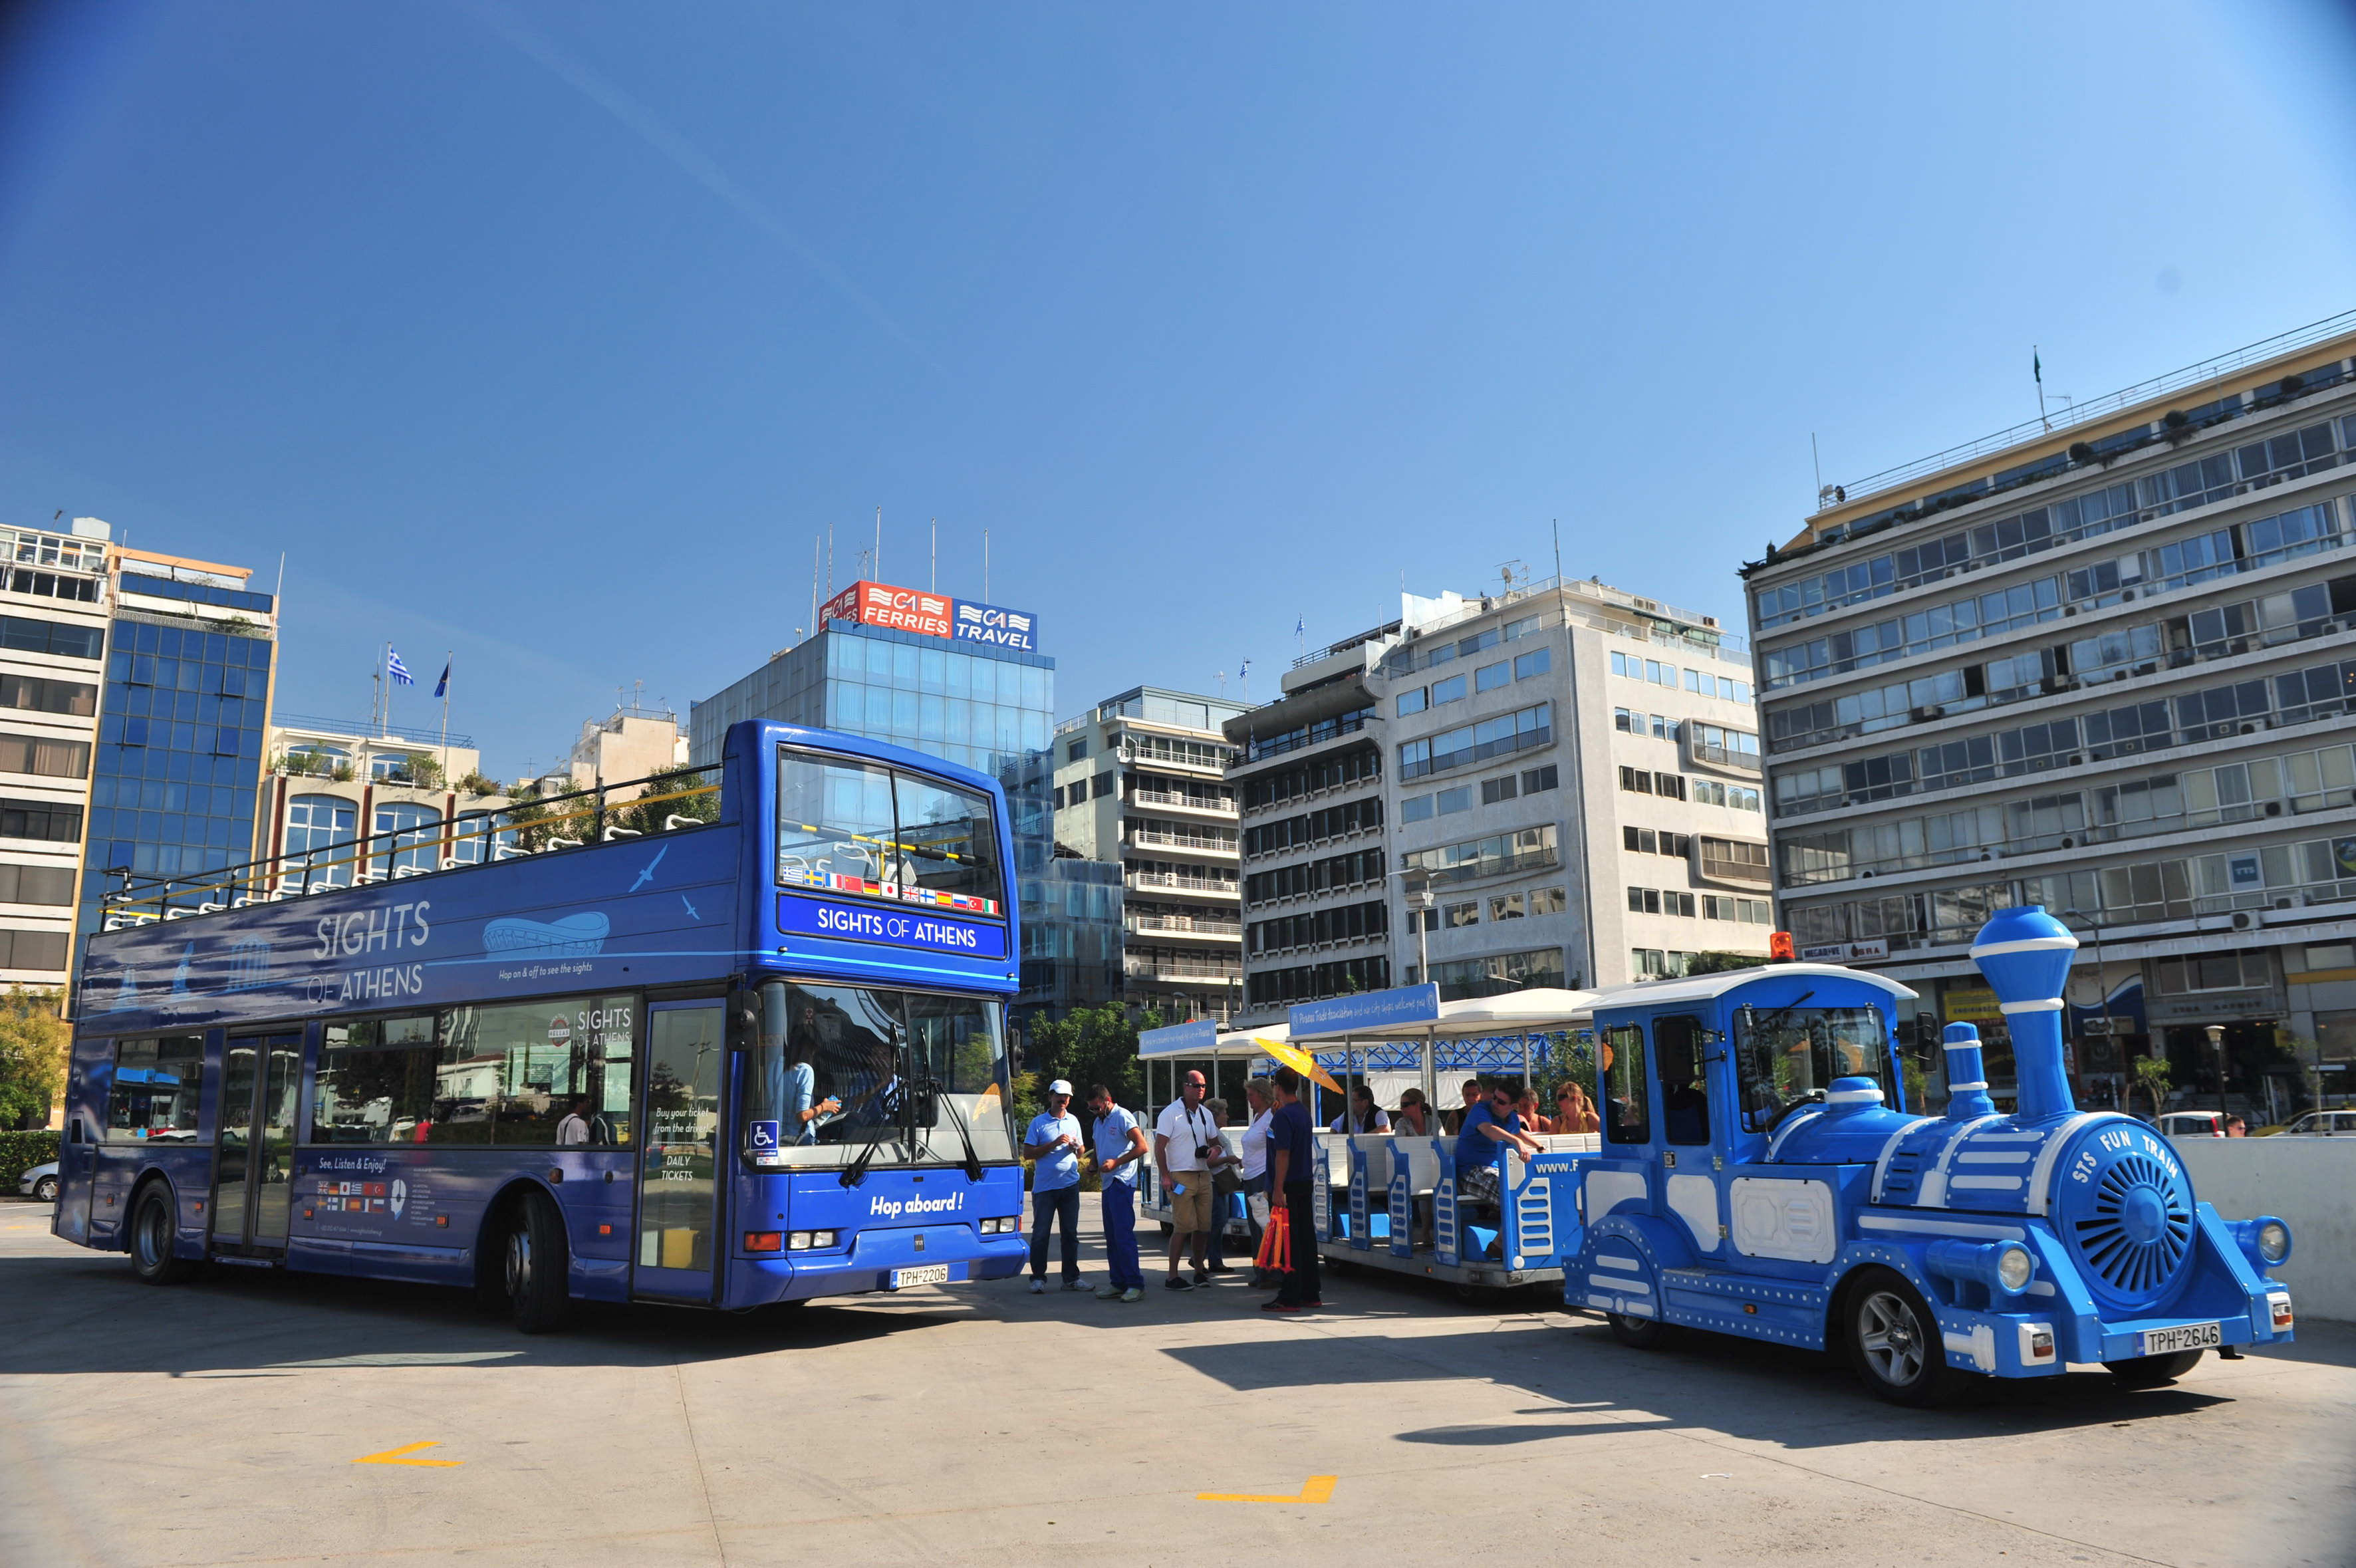 hop on hop off trolley service via grey line tours:Combo Athens & Piraeus Line by Sightseeing Buses and Trains